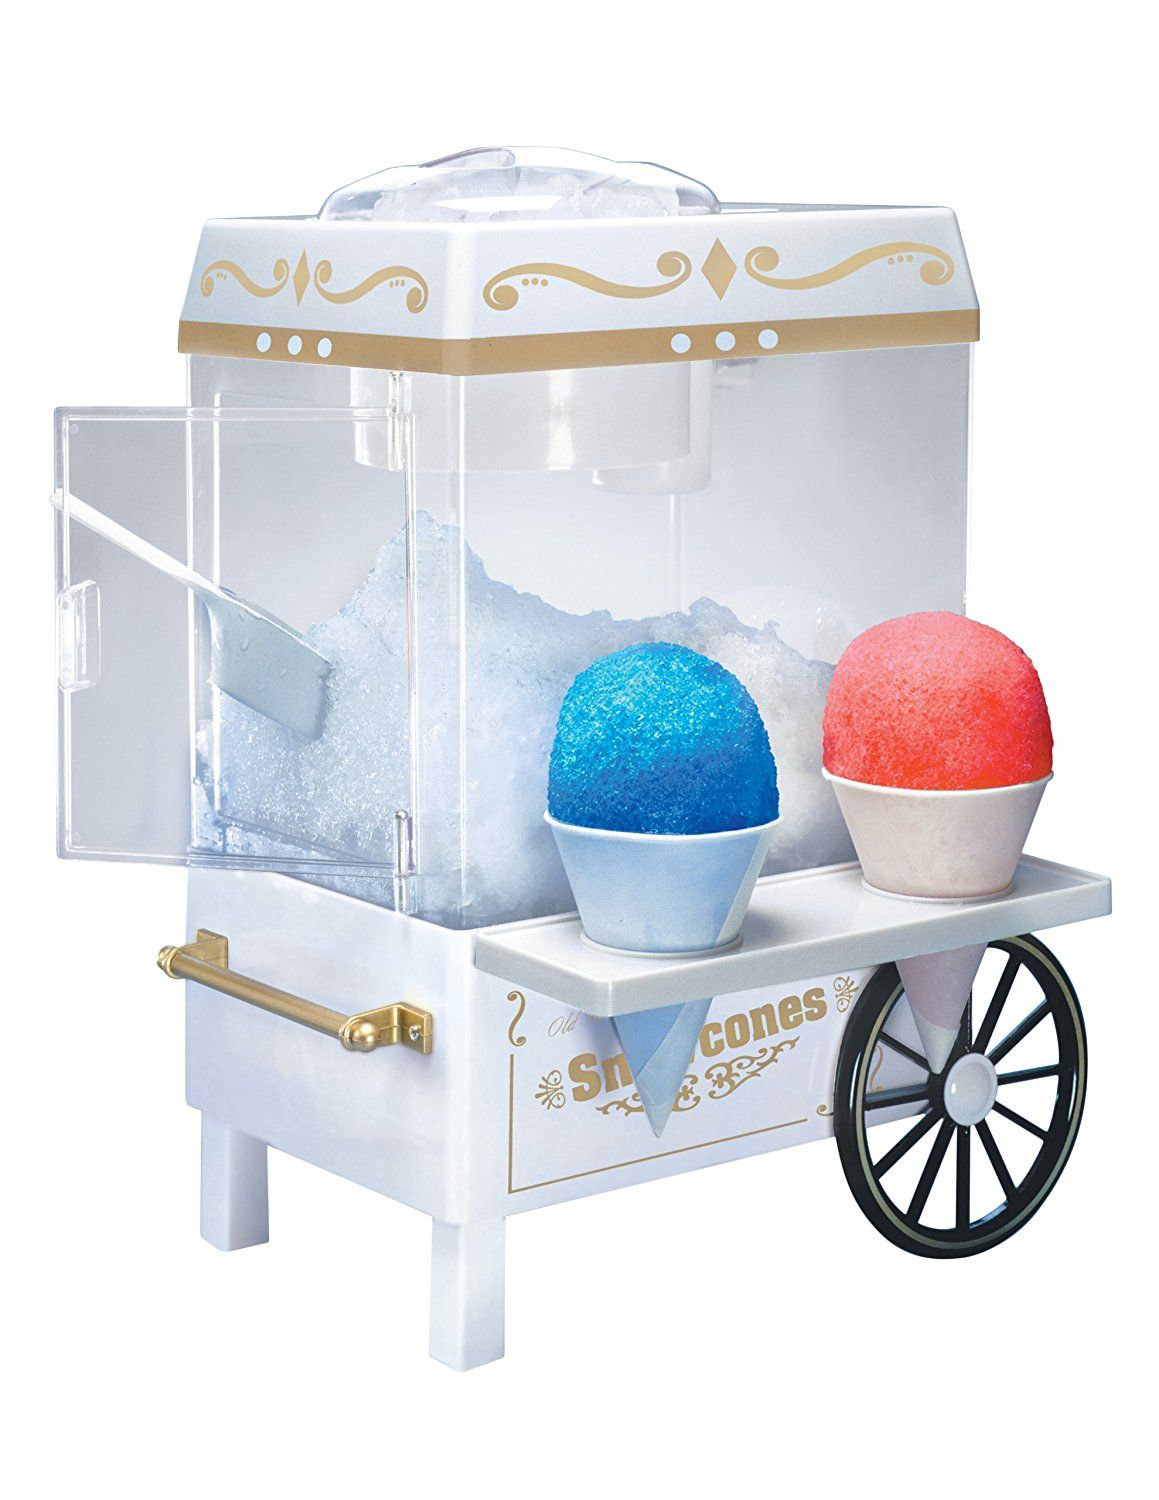 9 Best Shaved Ice Machines to Buy in 2020 Reviews | Snow ...